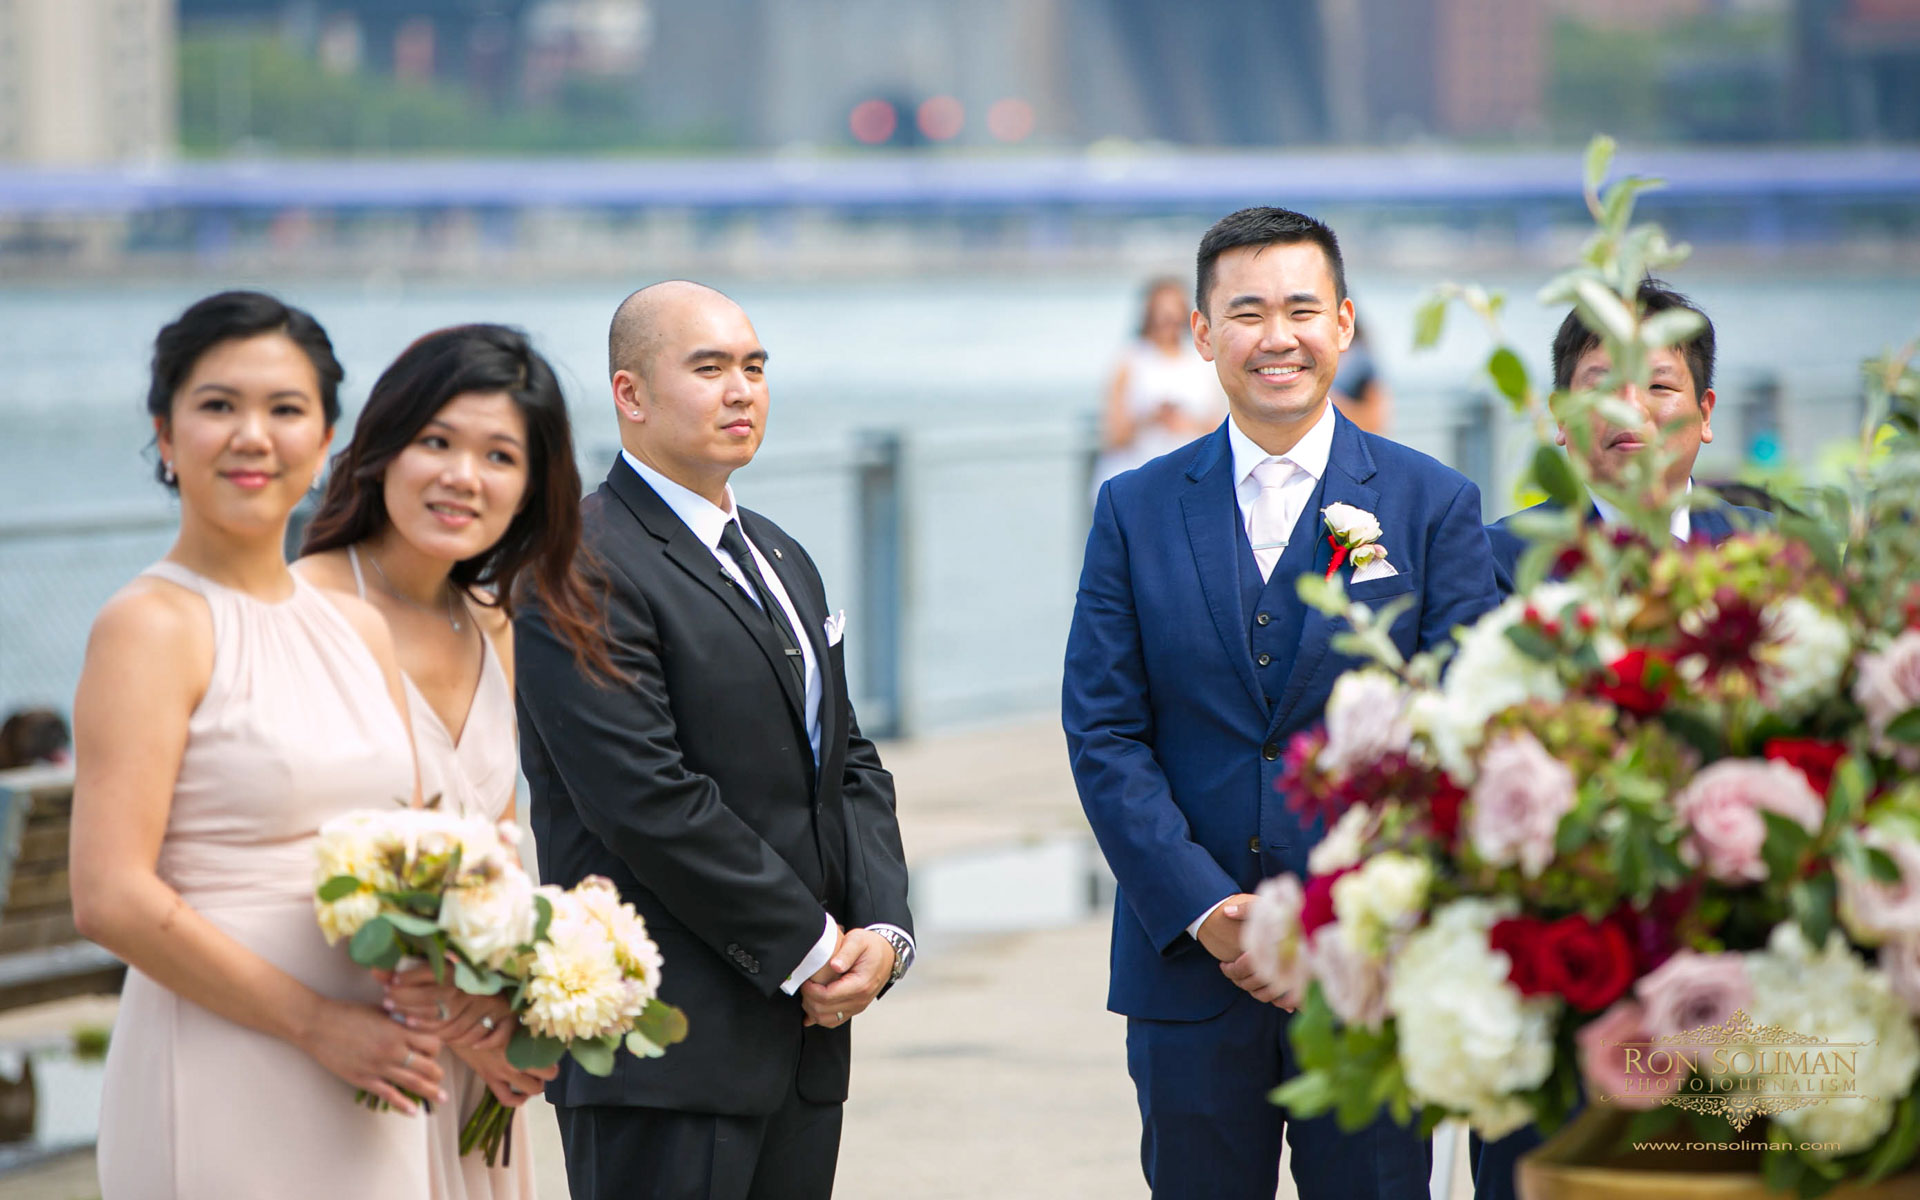 Brooklyn Bridge Park Wedding 18